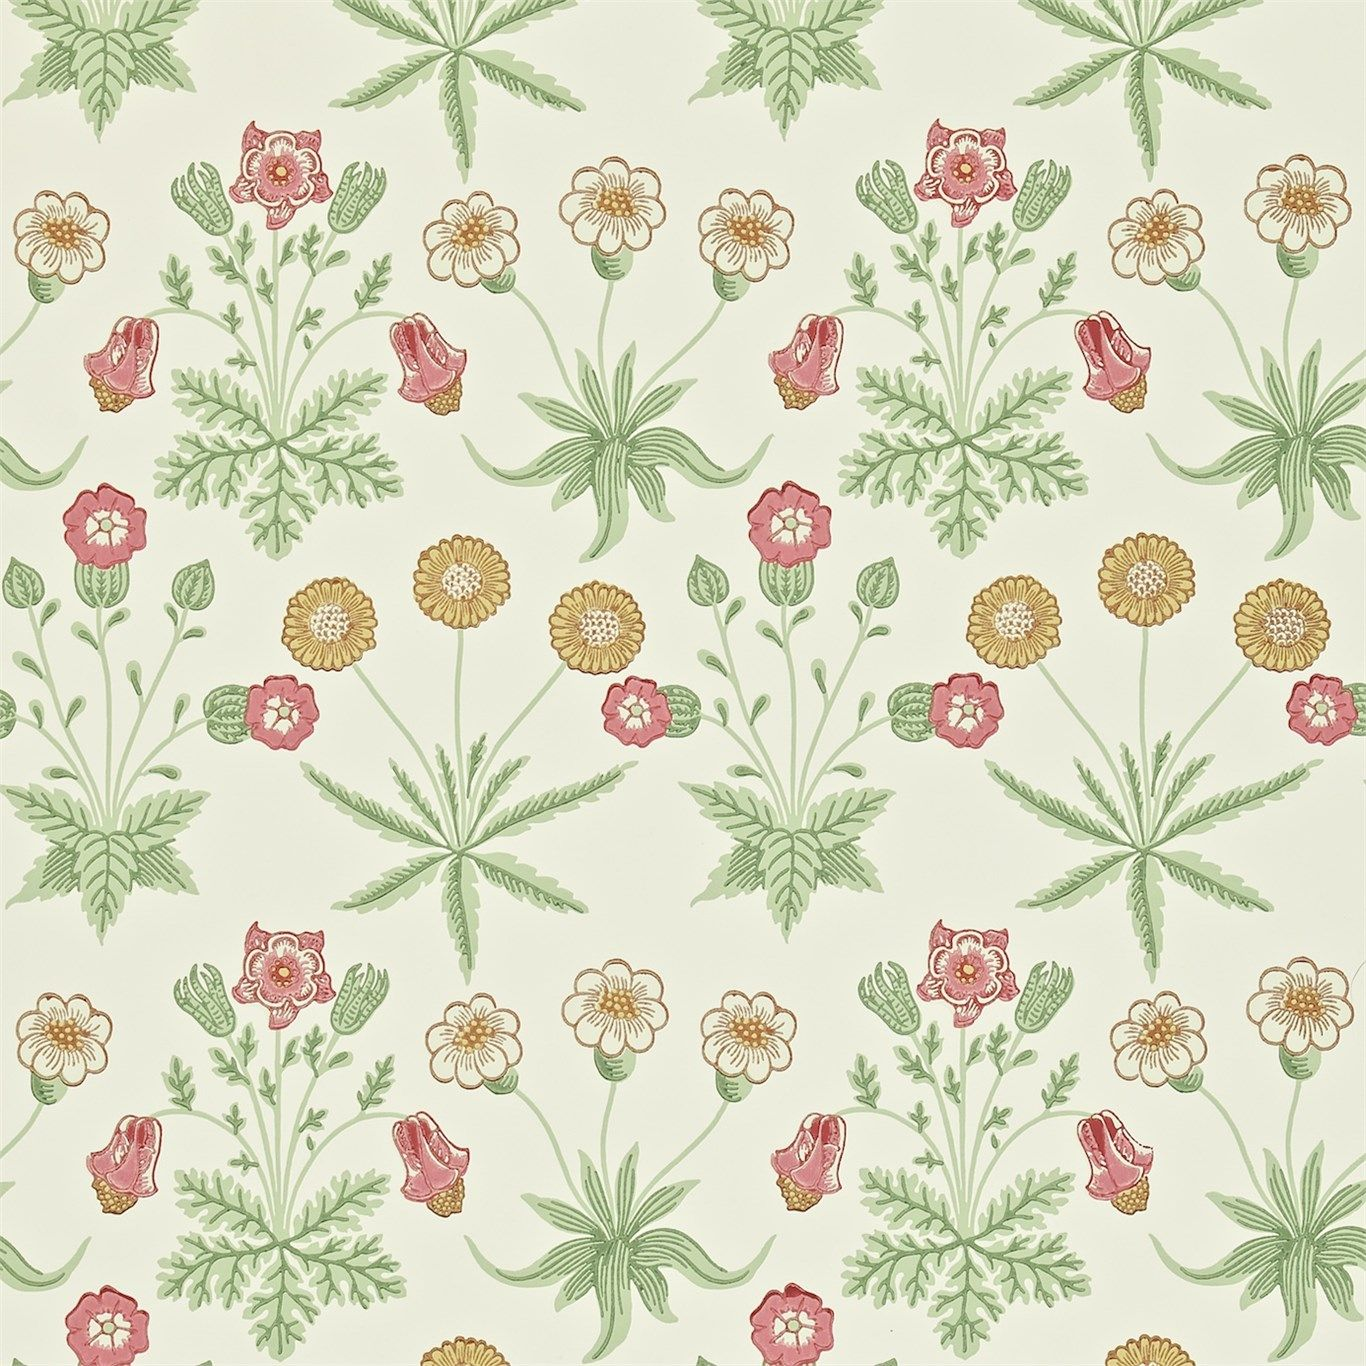 Daisy Floral Wallpaper A Simple And Classic Patterned Featuring Pink Light Beige Golden Brown Flowers On Cream Backg